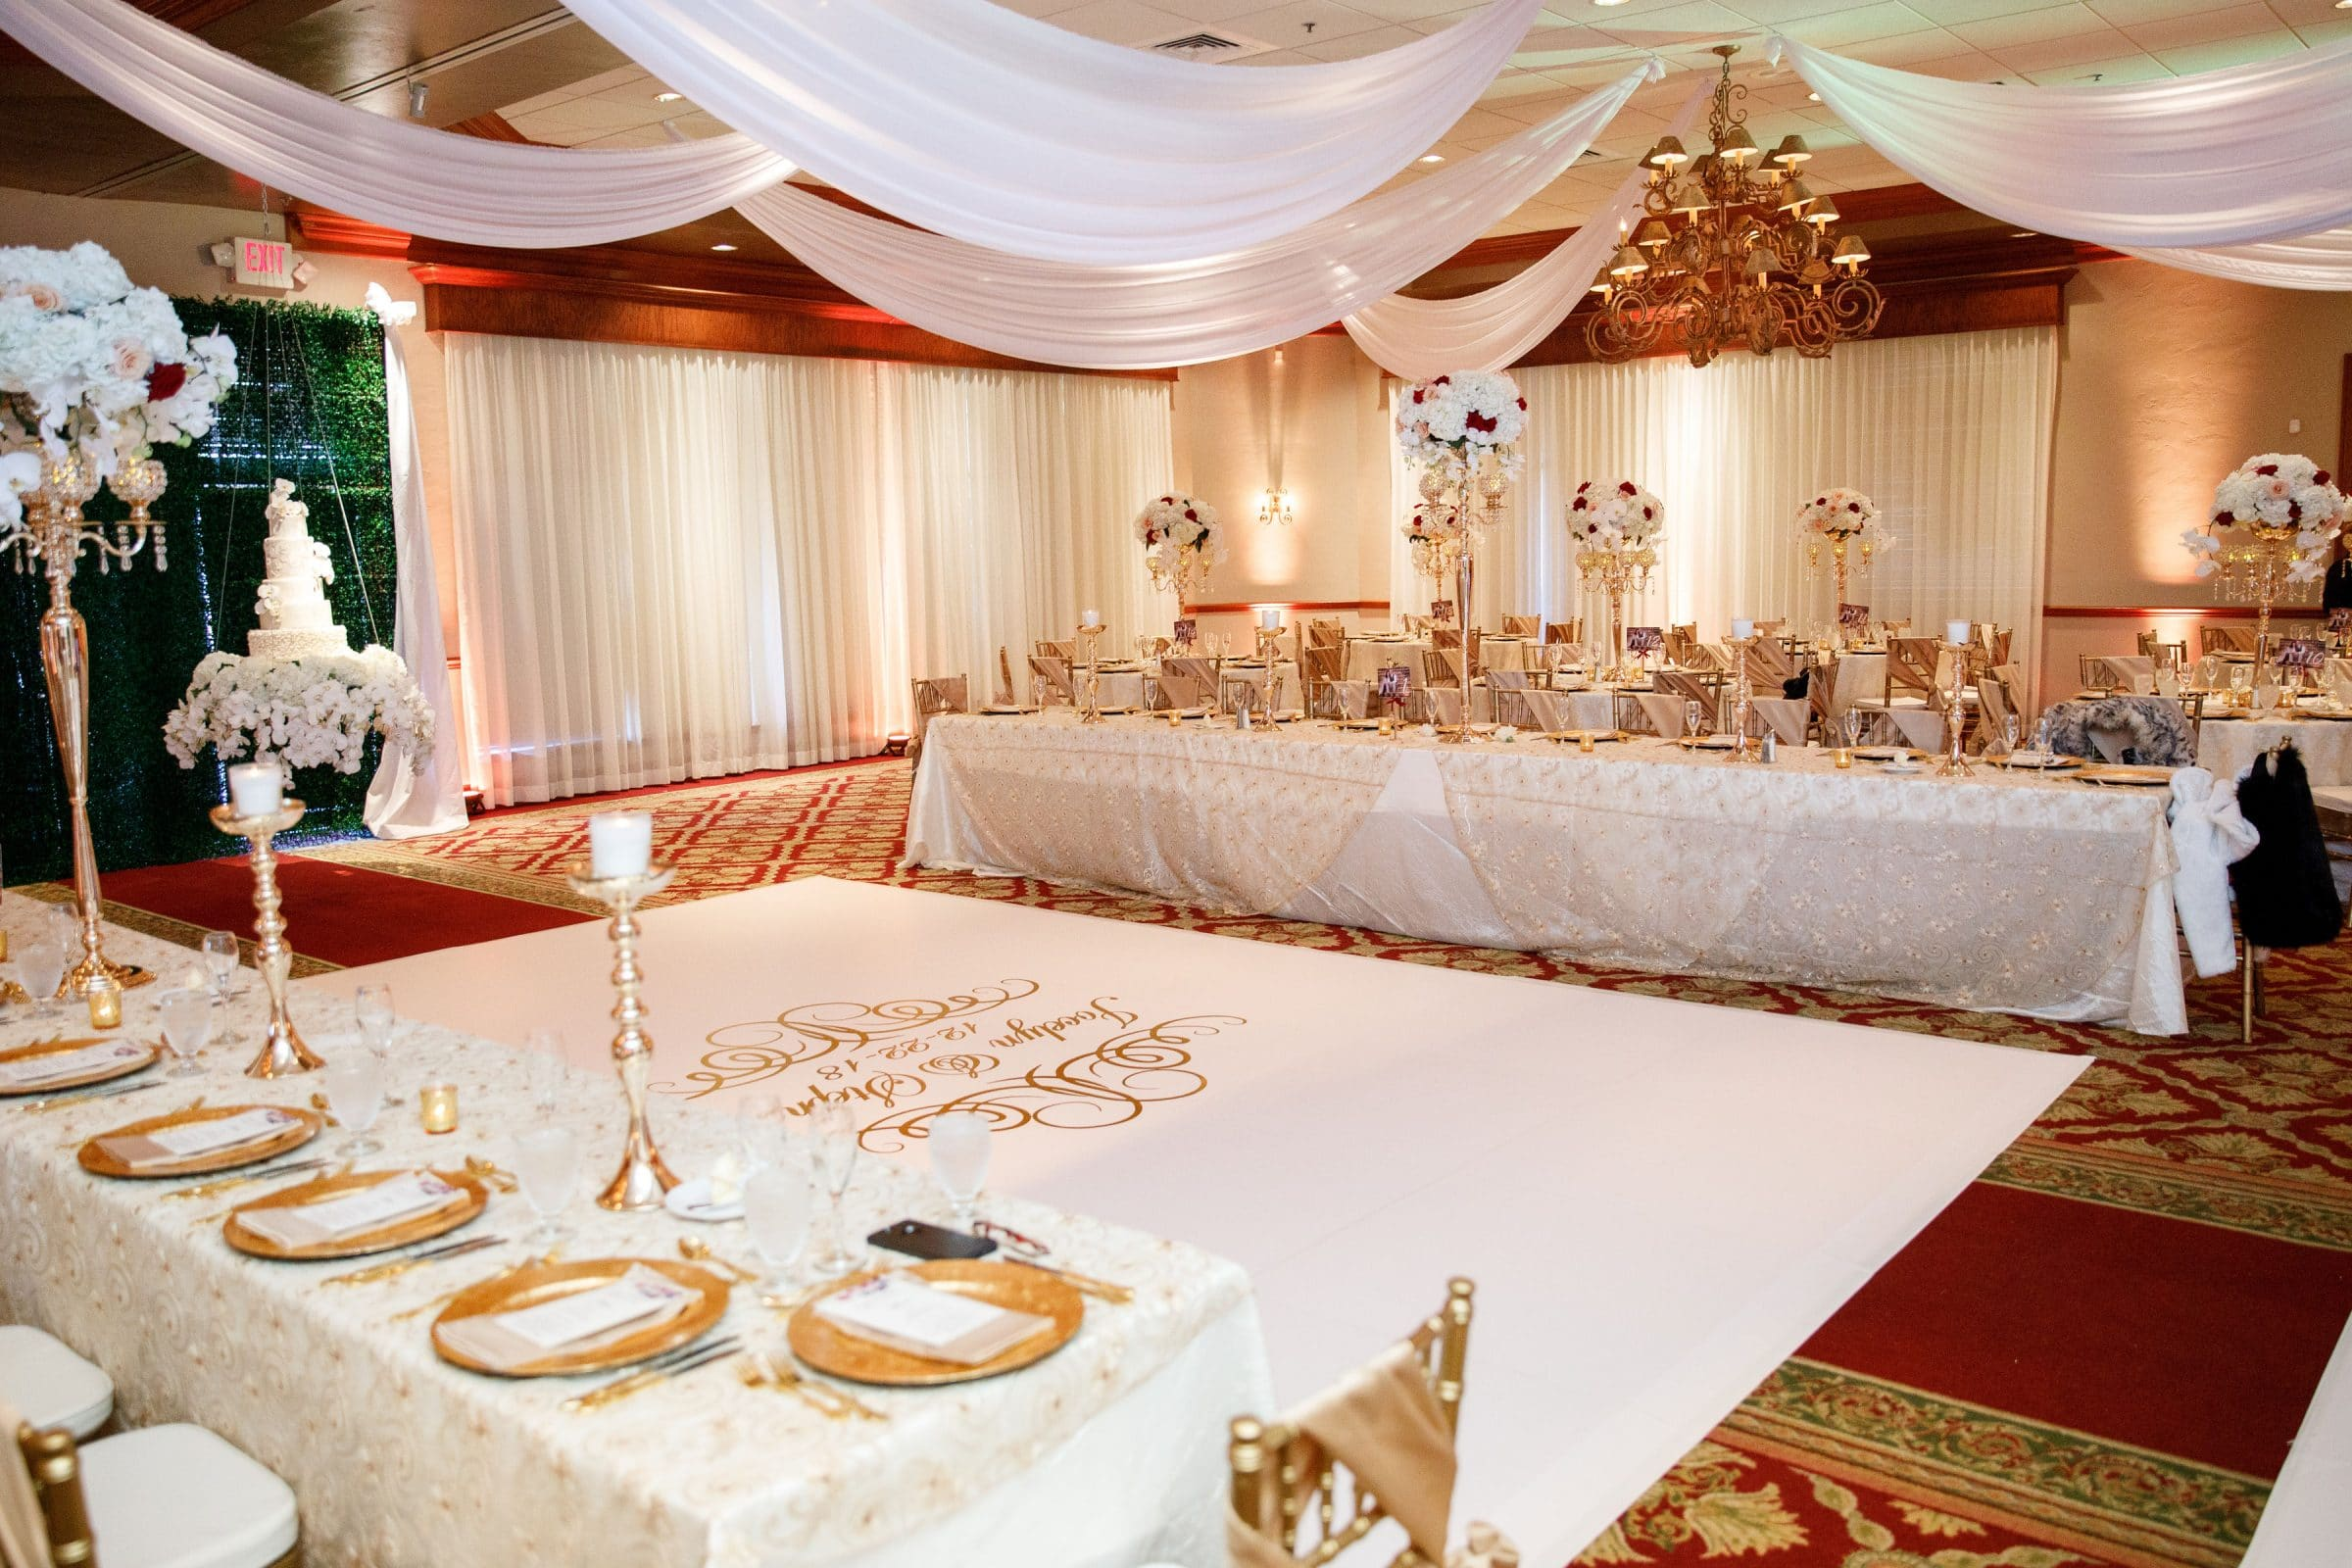 Burgundy and Gold Ballroom with white details